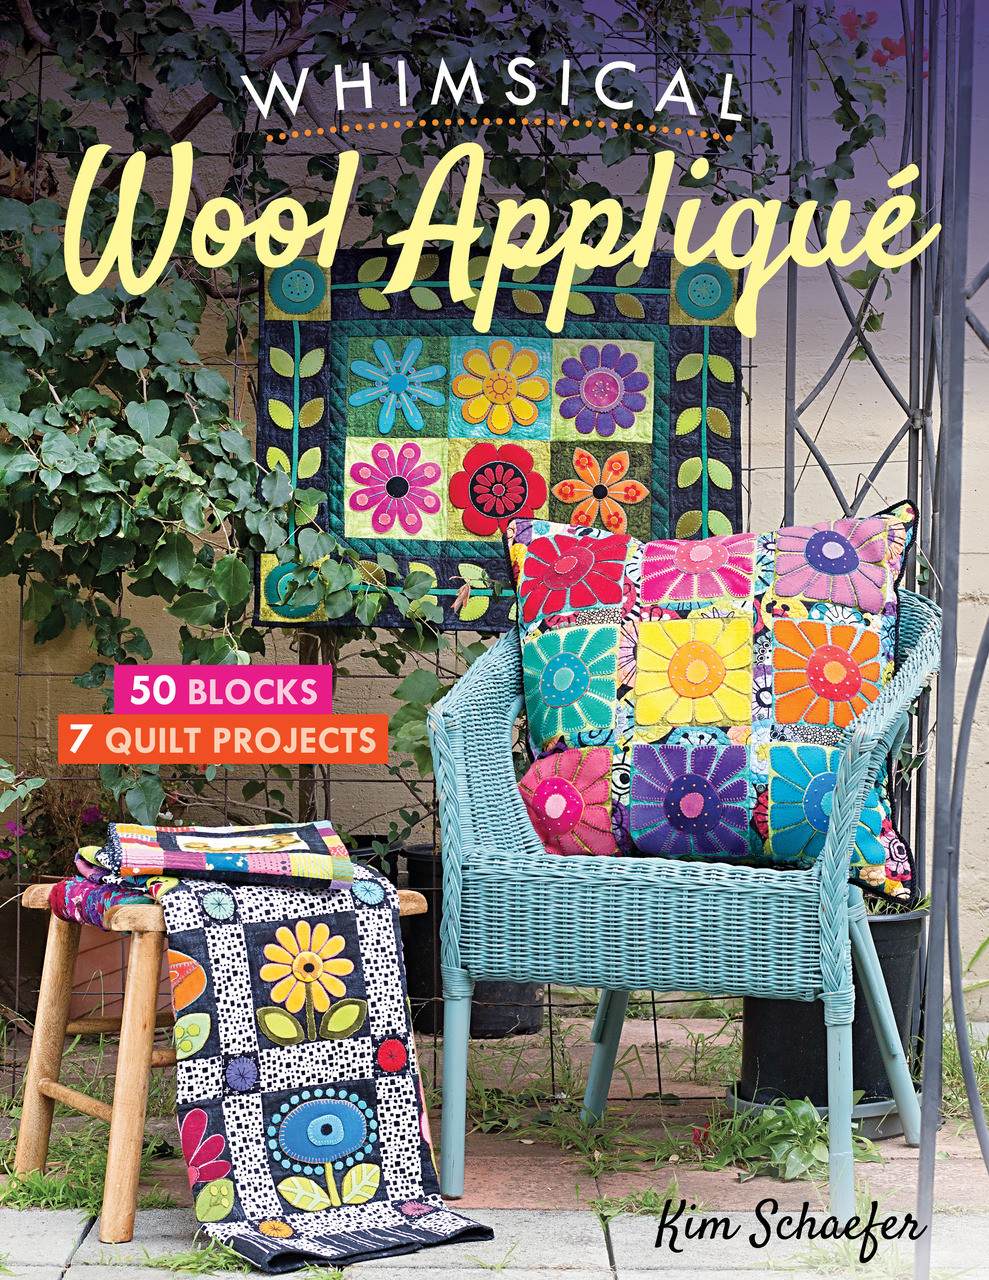 Cozy up to wool appliqué with fifty colorful garden blocks to mix and match! Best-selling author Kim Schaefer shares seven easy wool appliqué projects to teach you embroidery basics or to bring your hand stitching to the next level. Layer luscious flowers, birds, and butterflies of wool on top of cotton fabric, then add the embroidered finishing touches to fusible appliqué wall quilts, table toppers, and pillows. It's the perfect primer for every skill level.